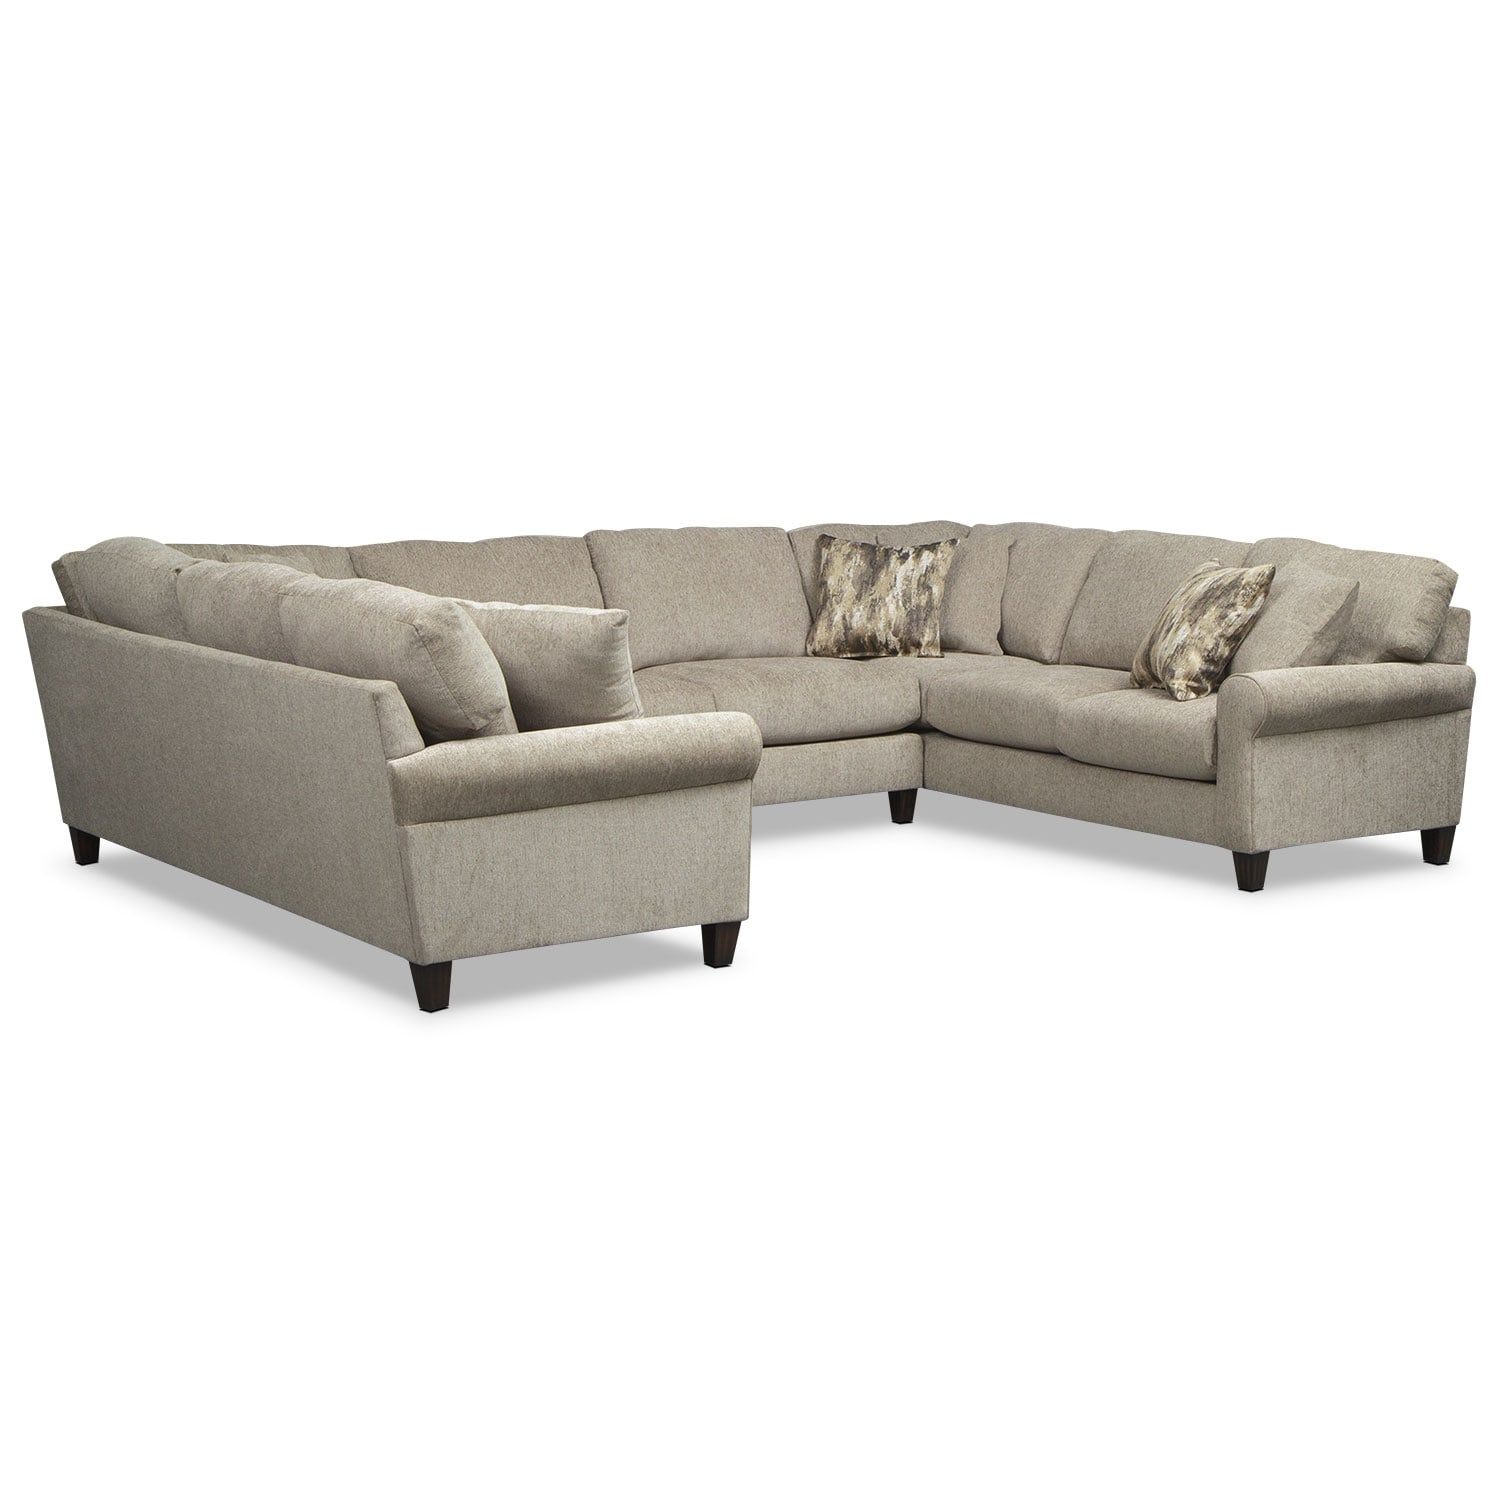 Karma 3-Piece Sectional - Mink